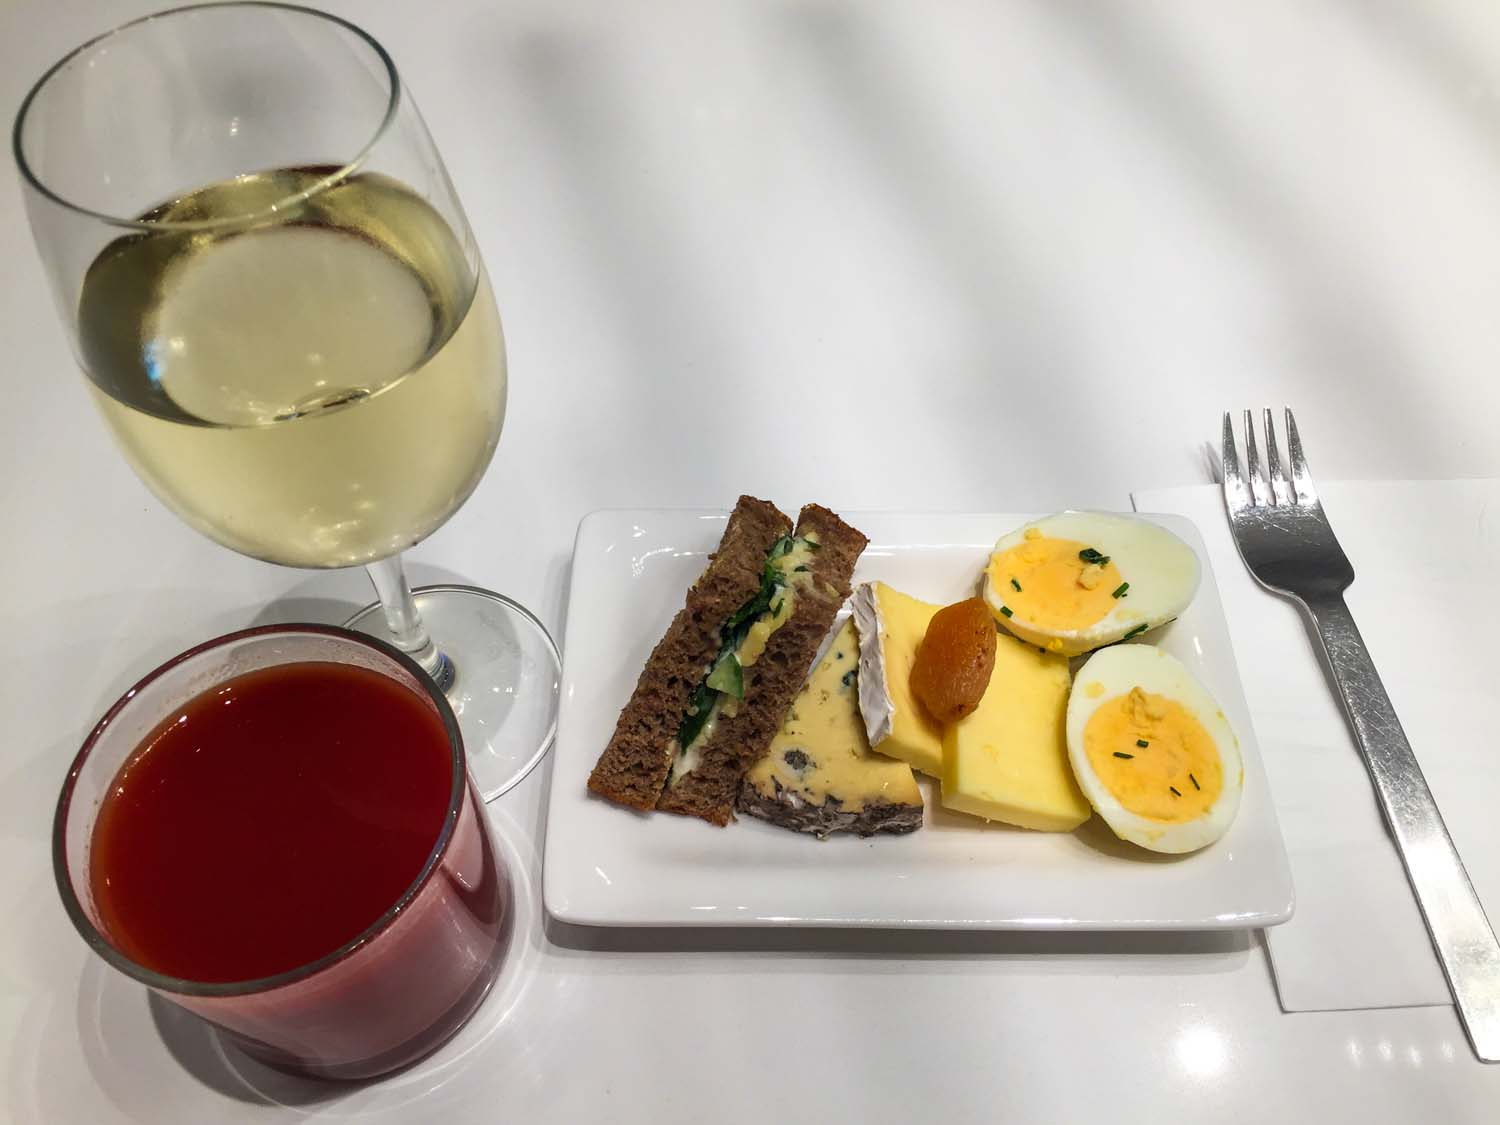 Air New Zealand International Lounge Auckland - my meal